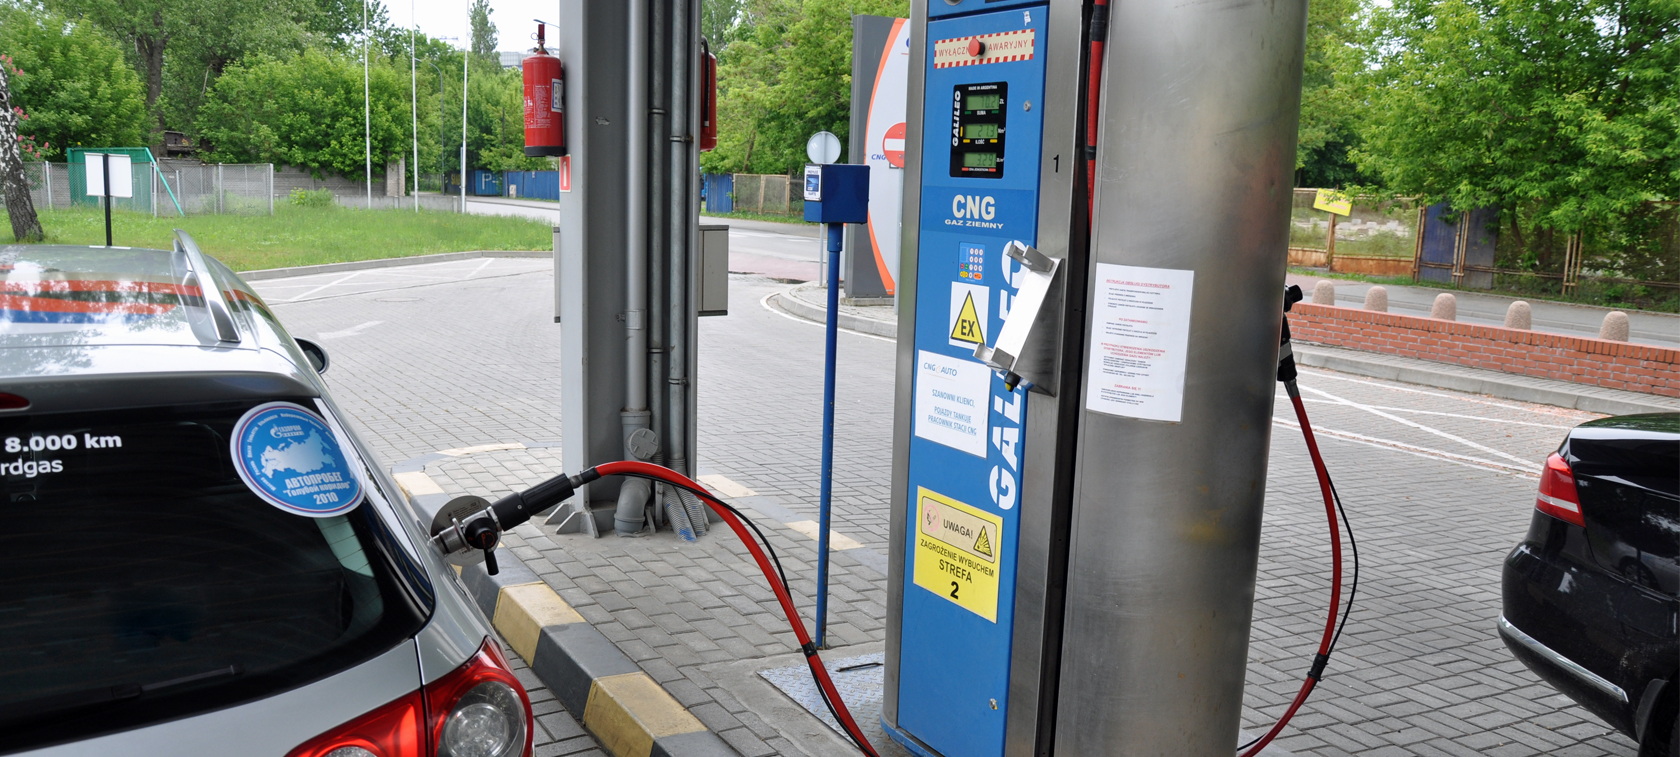 39000 CNG stations worldwide by 2025